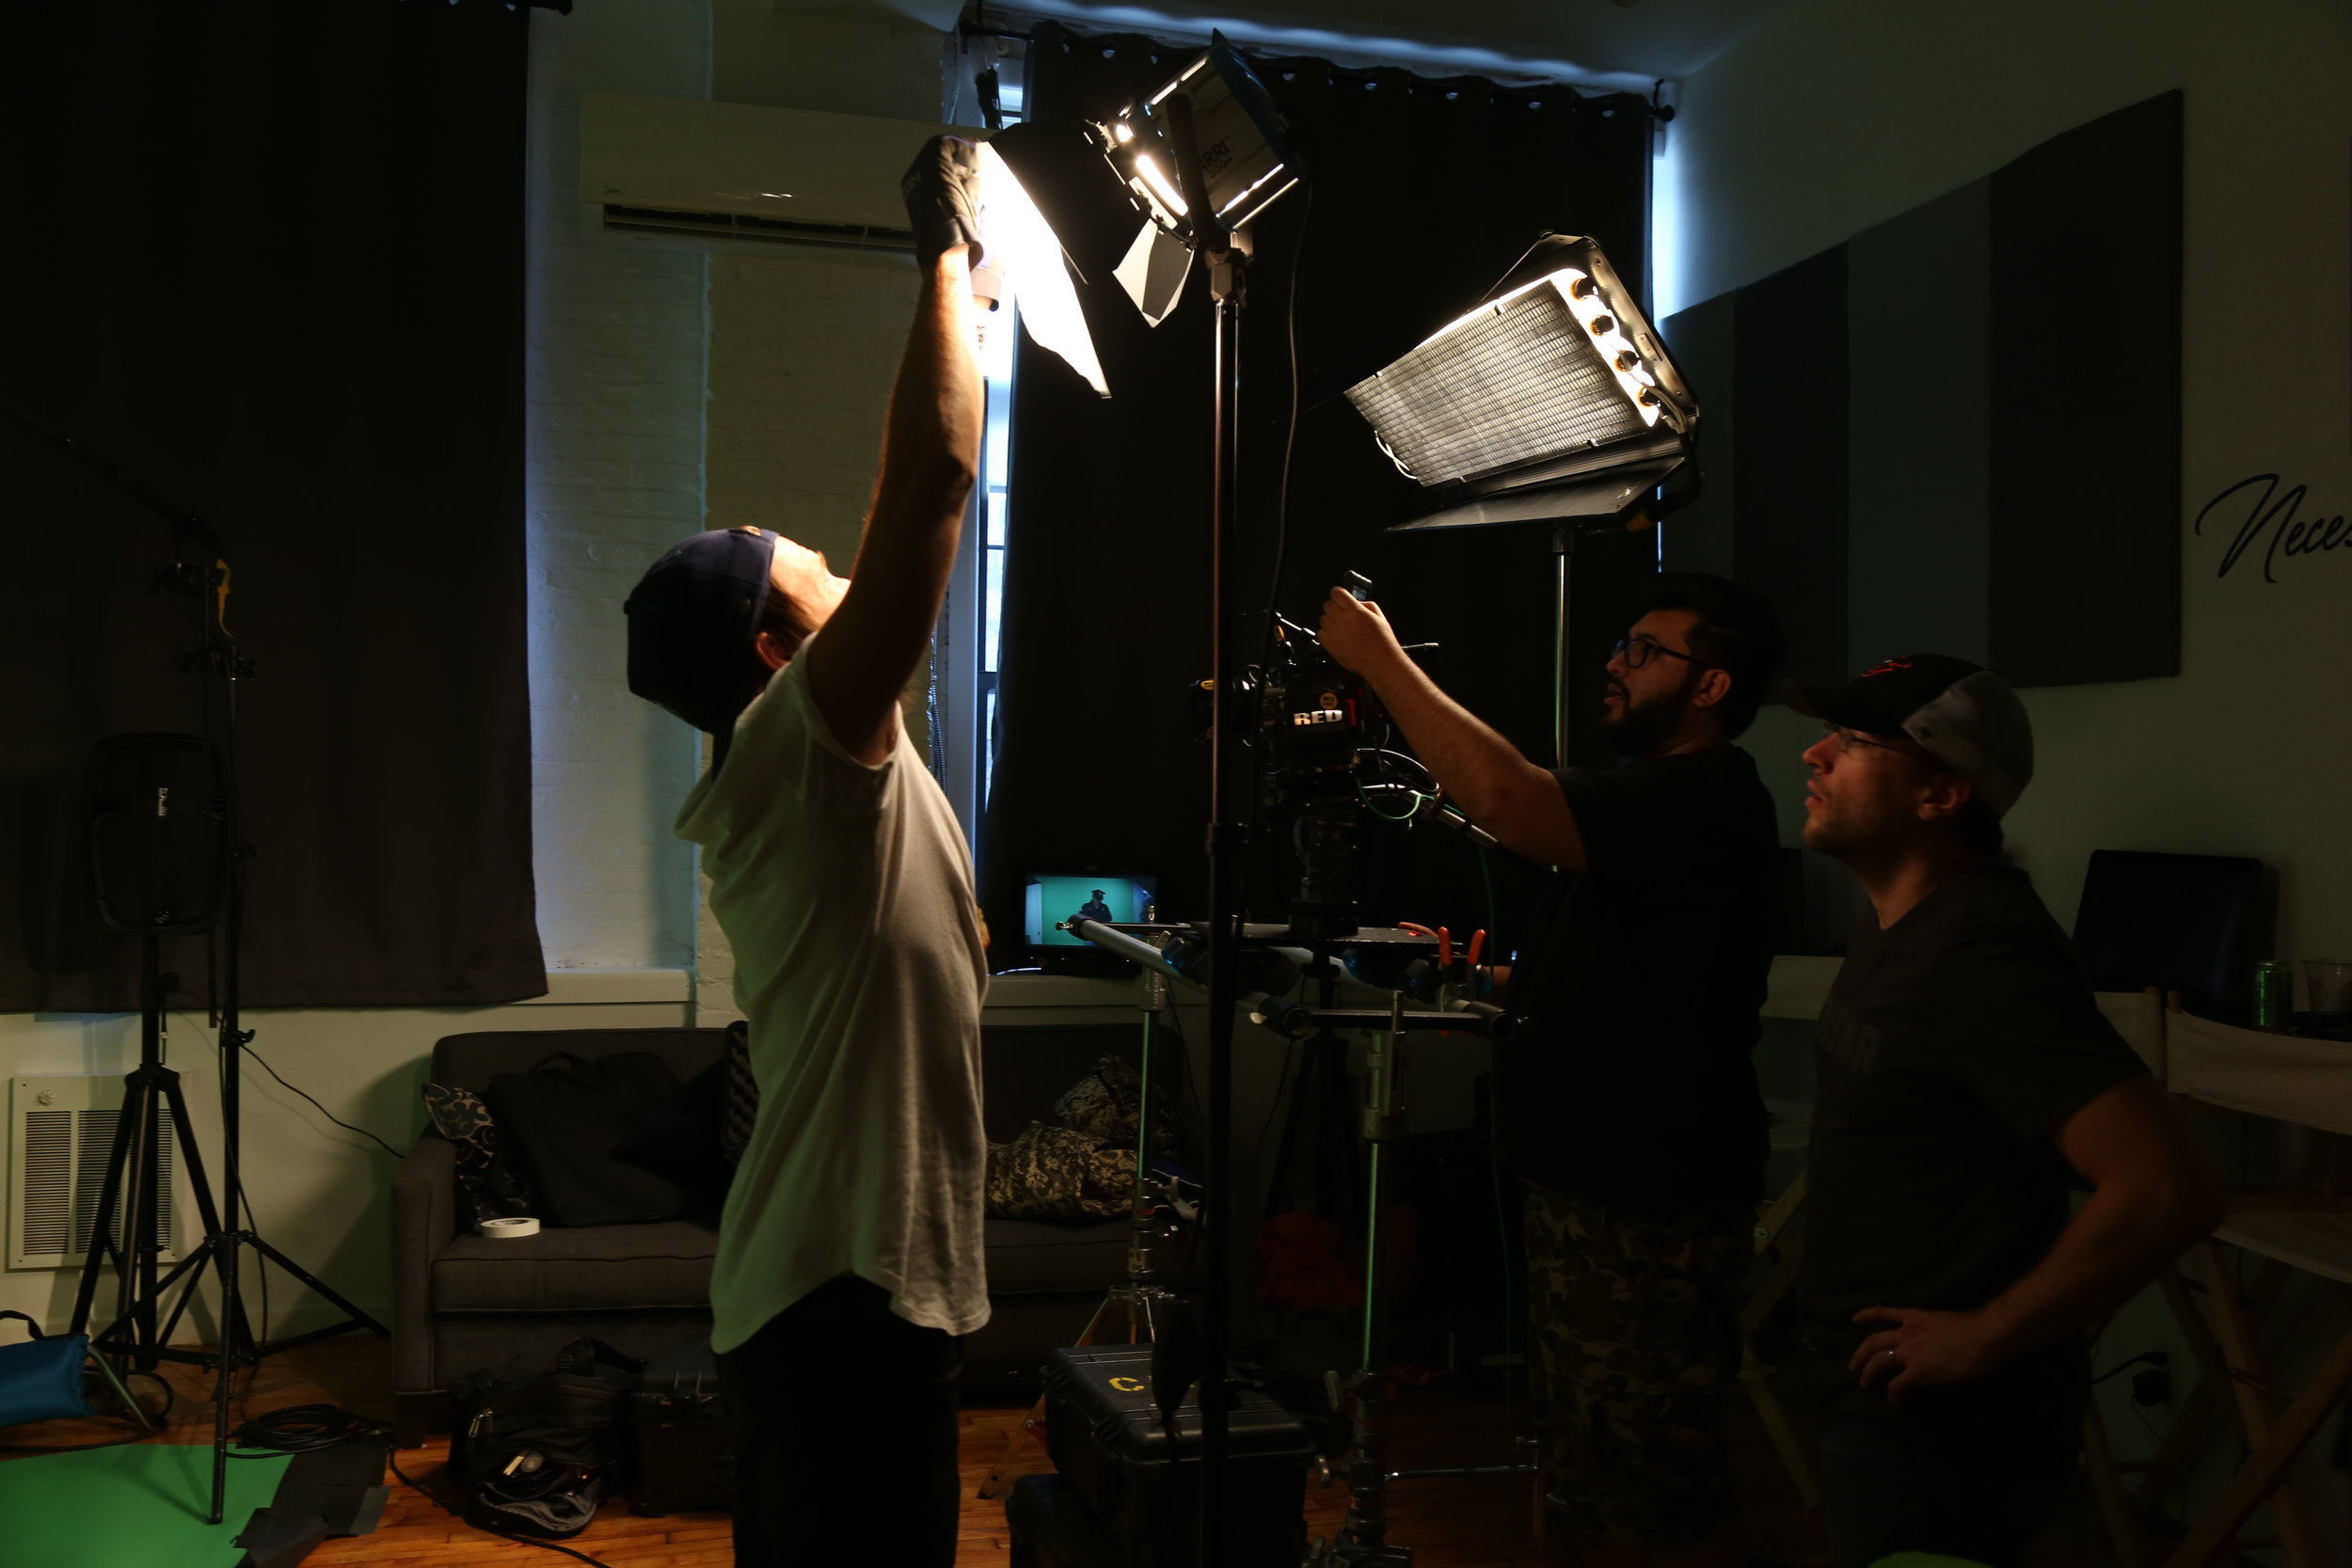 Production 101 - Starting a career in production?Need a quick overview of the essentials? Necessary Academy's course will teach you the basics of cameras, lighting, and audio (including setup procedures and how to use the equipment). By the end of the course you will have the tools you need not only to practice but become an asset on any production set, including your own!